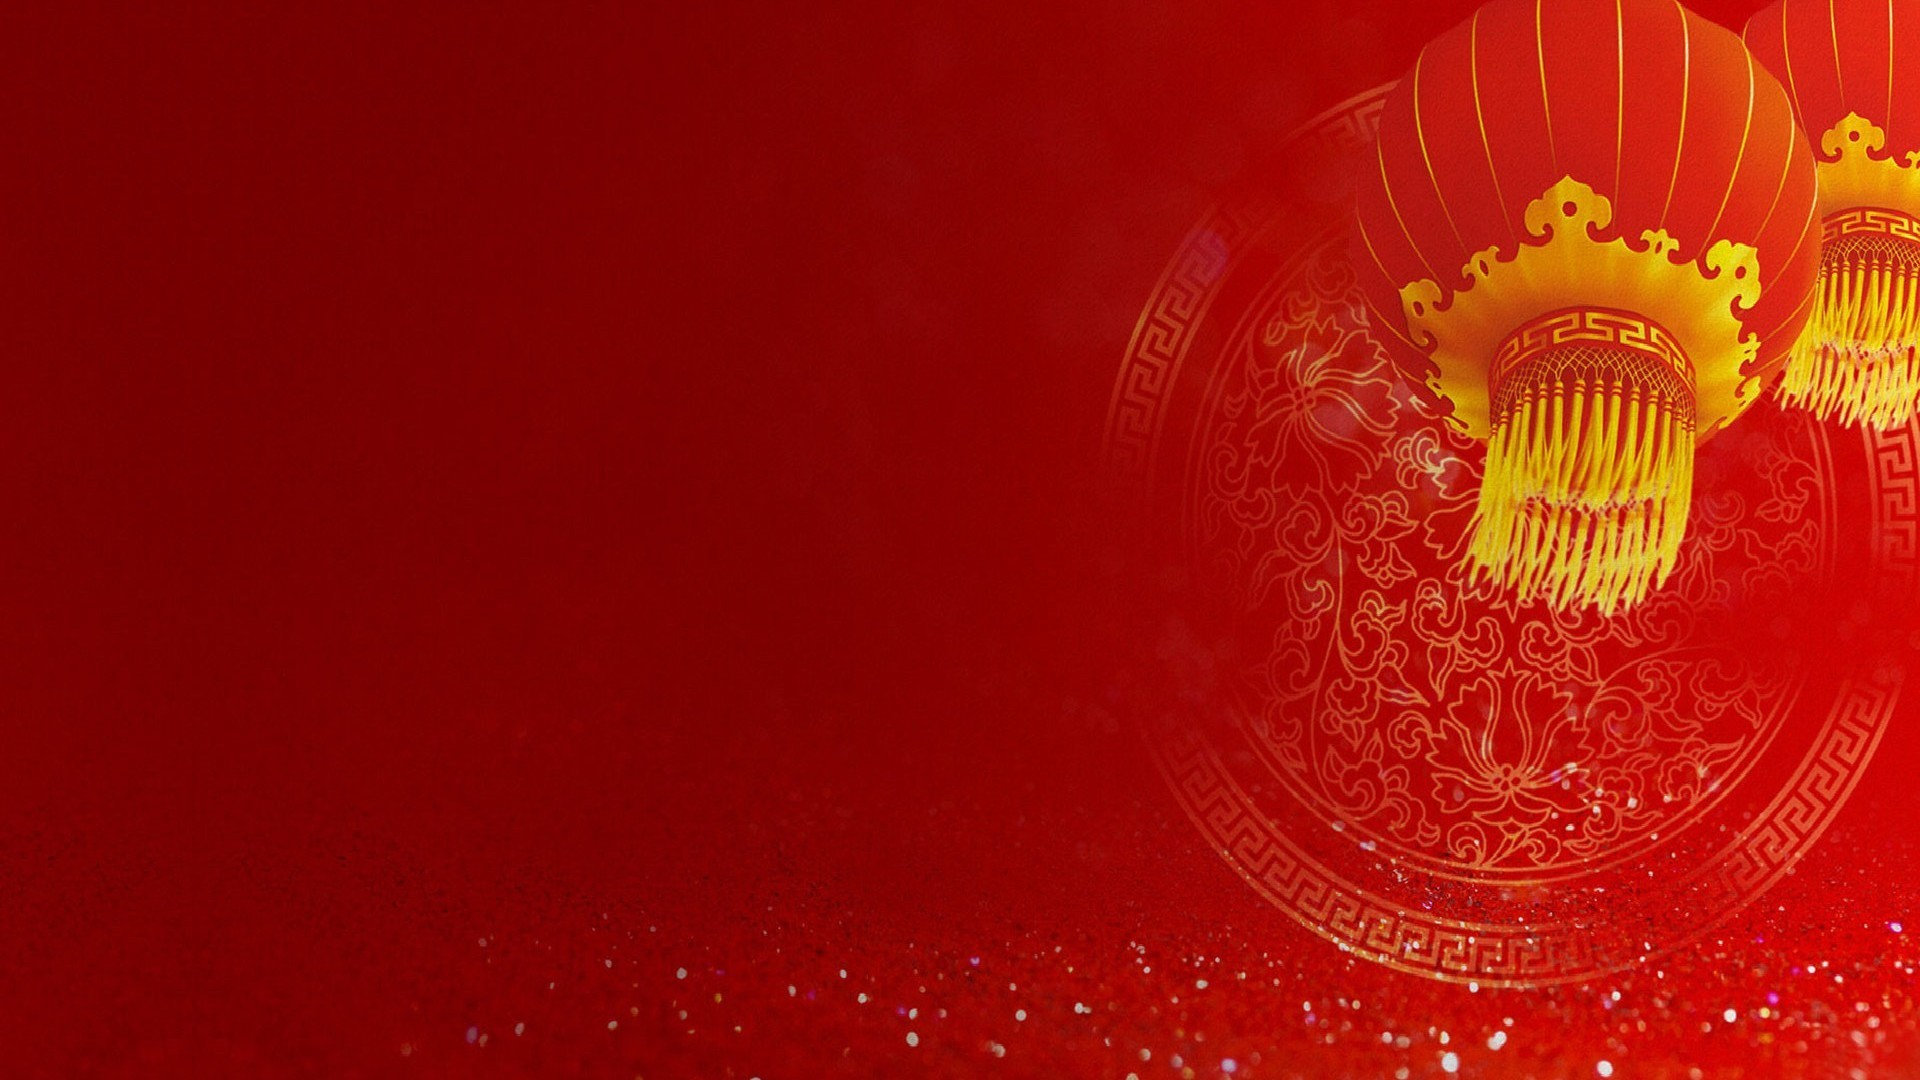 1920x1080 chinese new year 2016 desktop wallpaper